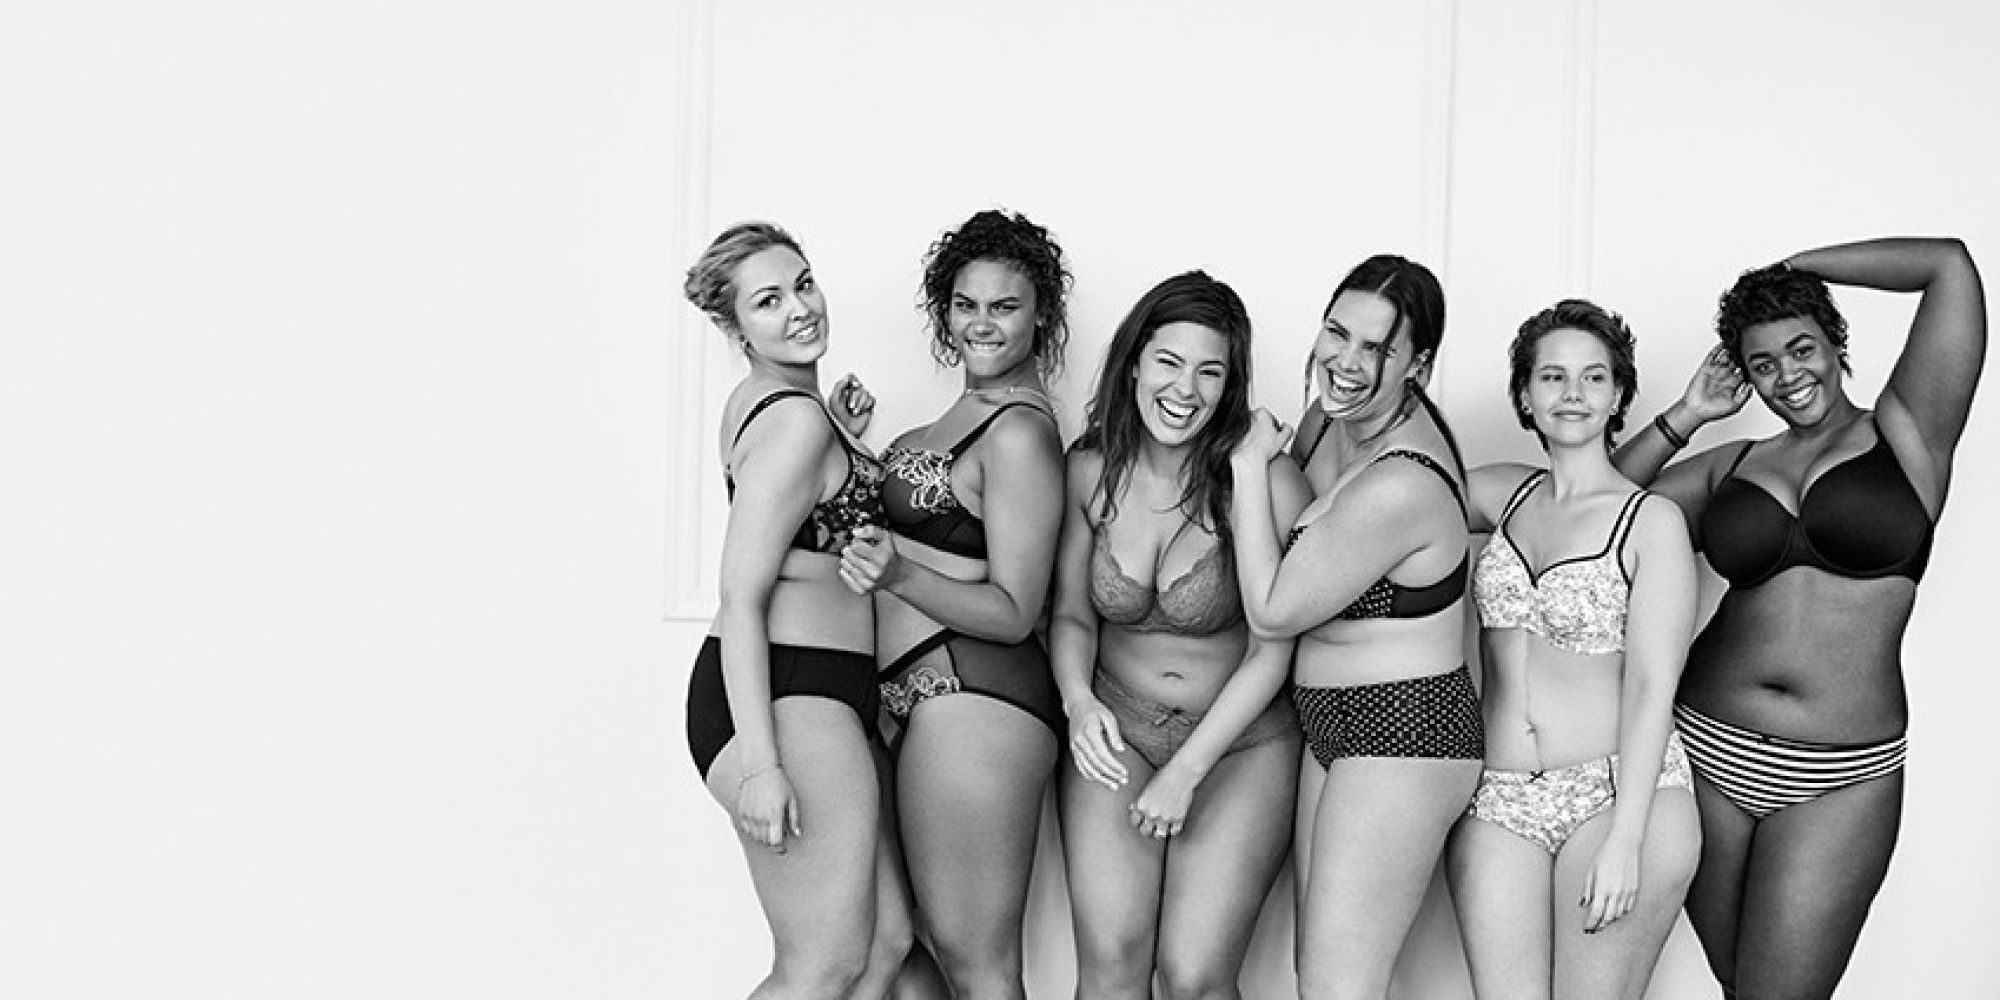 Angry Customers Accuse Lane Bryant of Fat Shaming